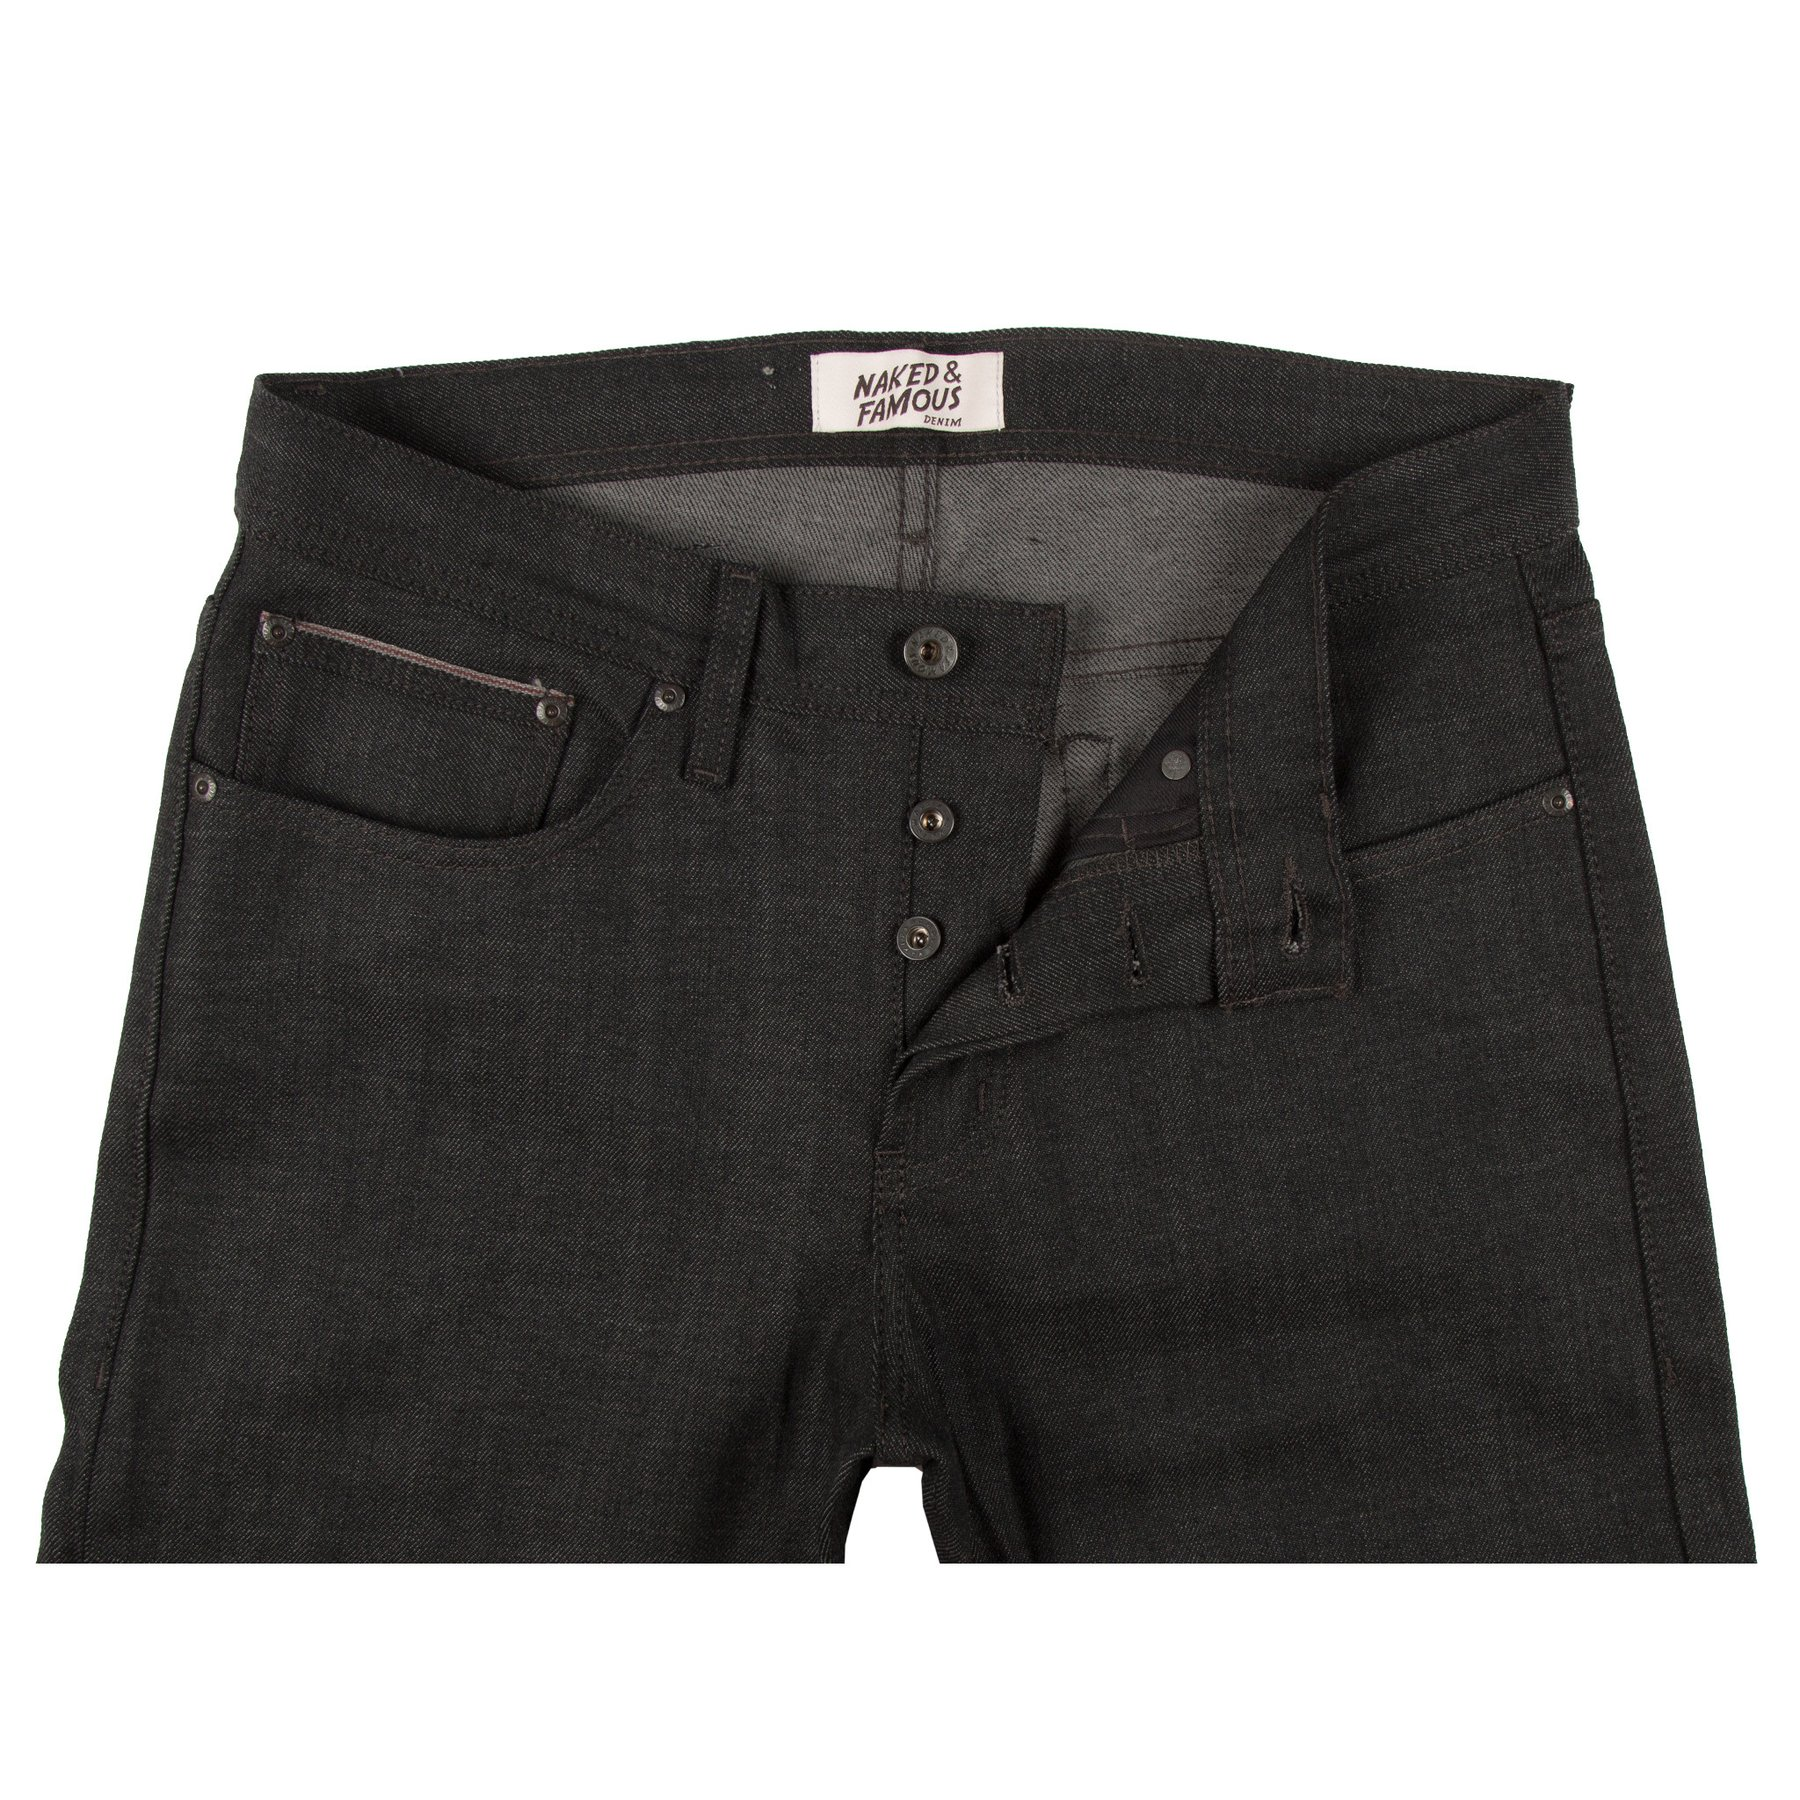 Black x Grey Stretch Selvedge Jeans Front